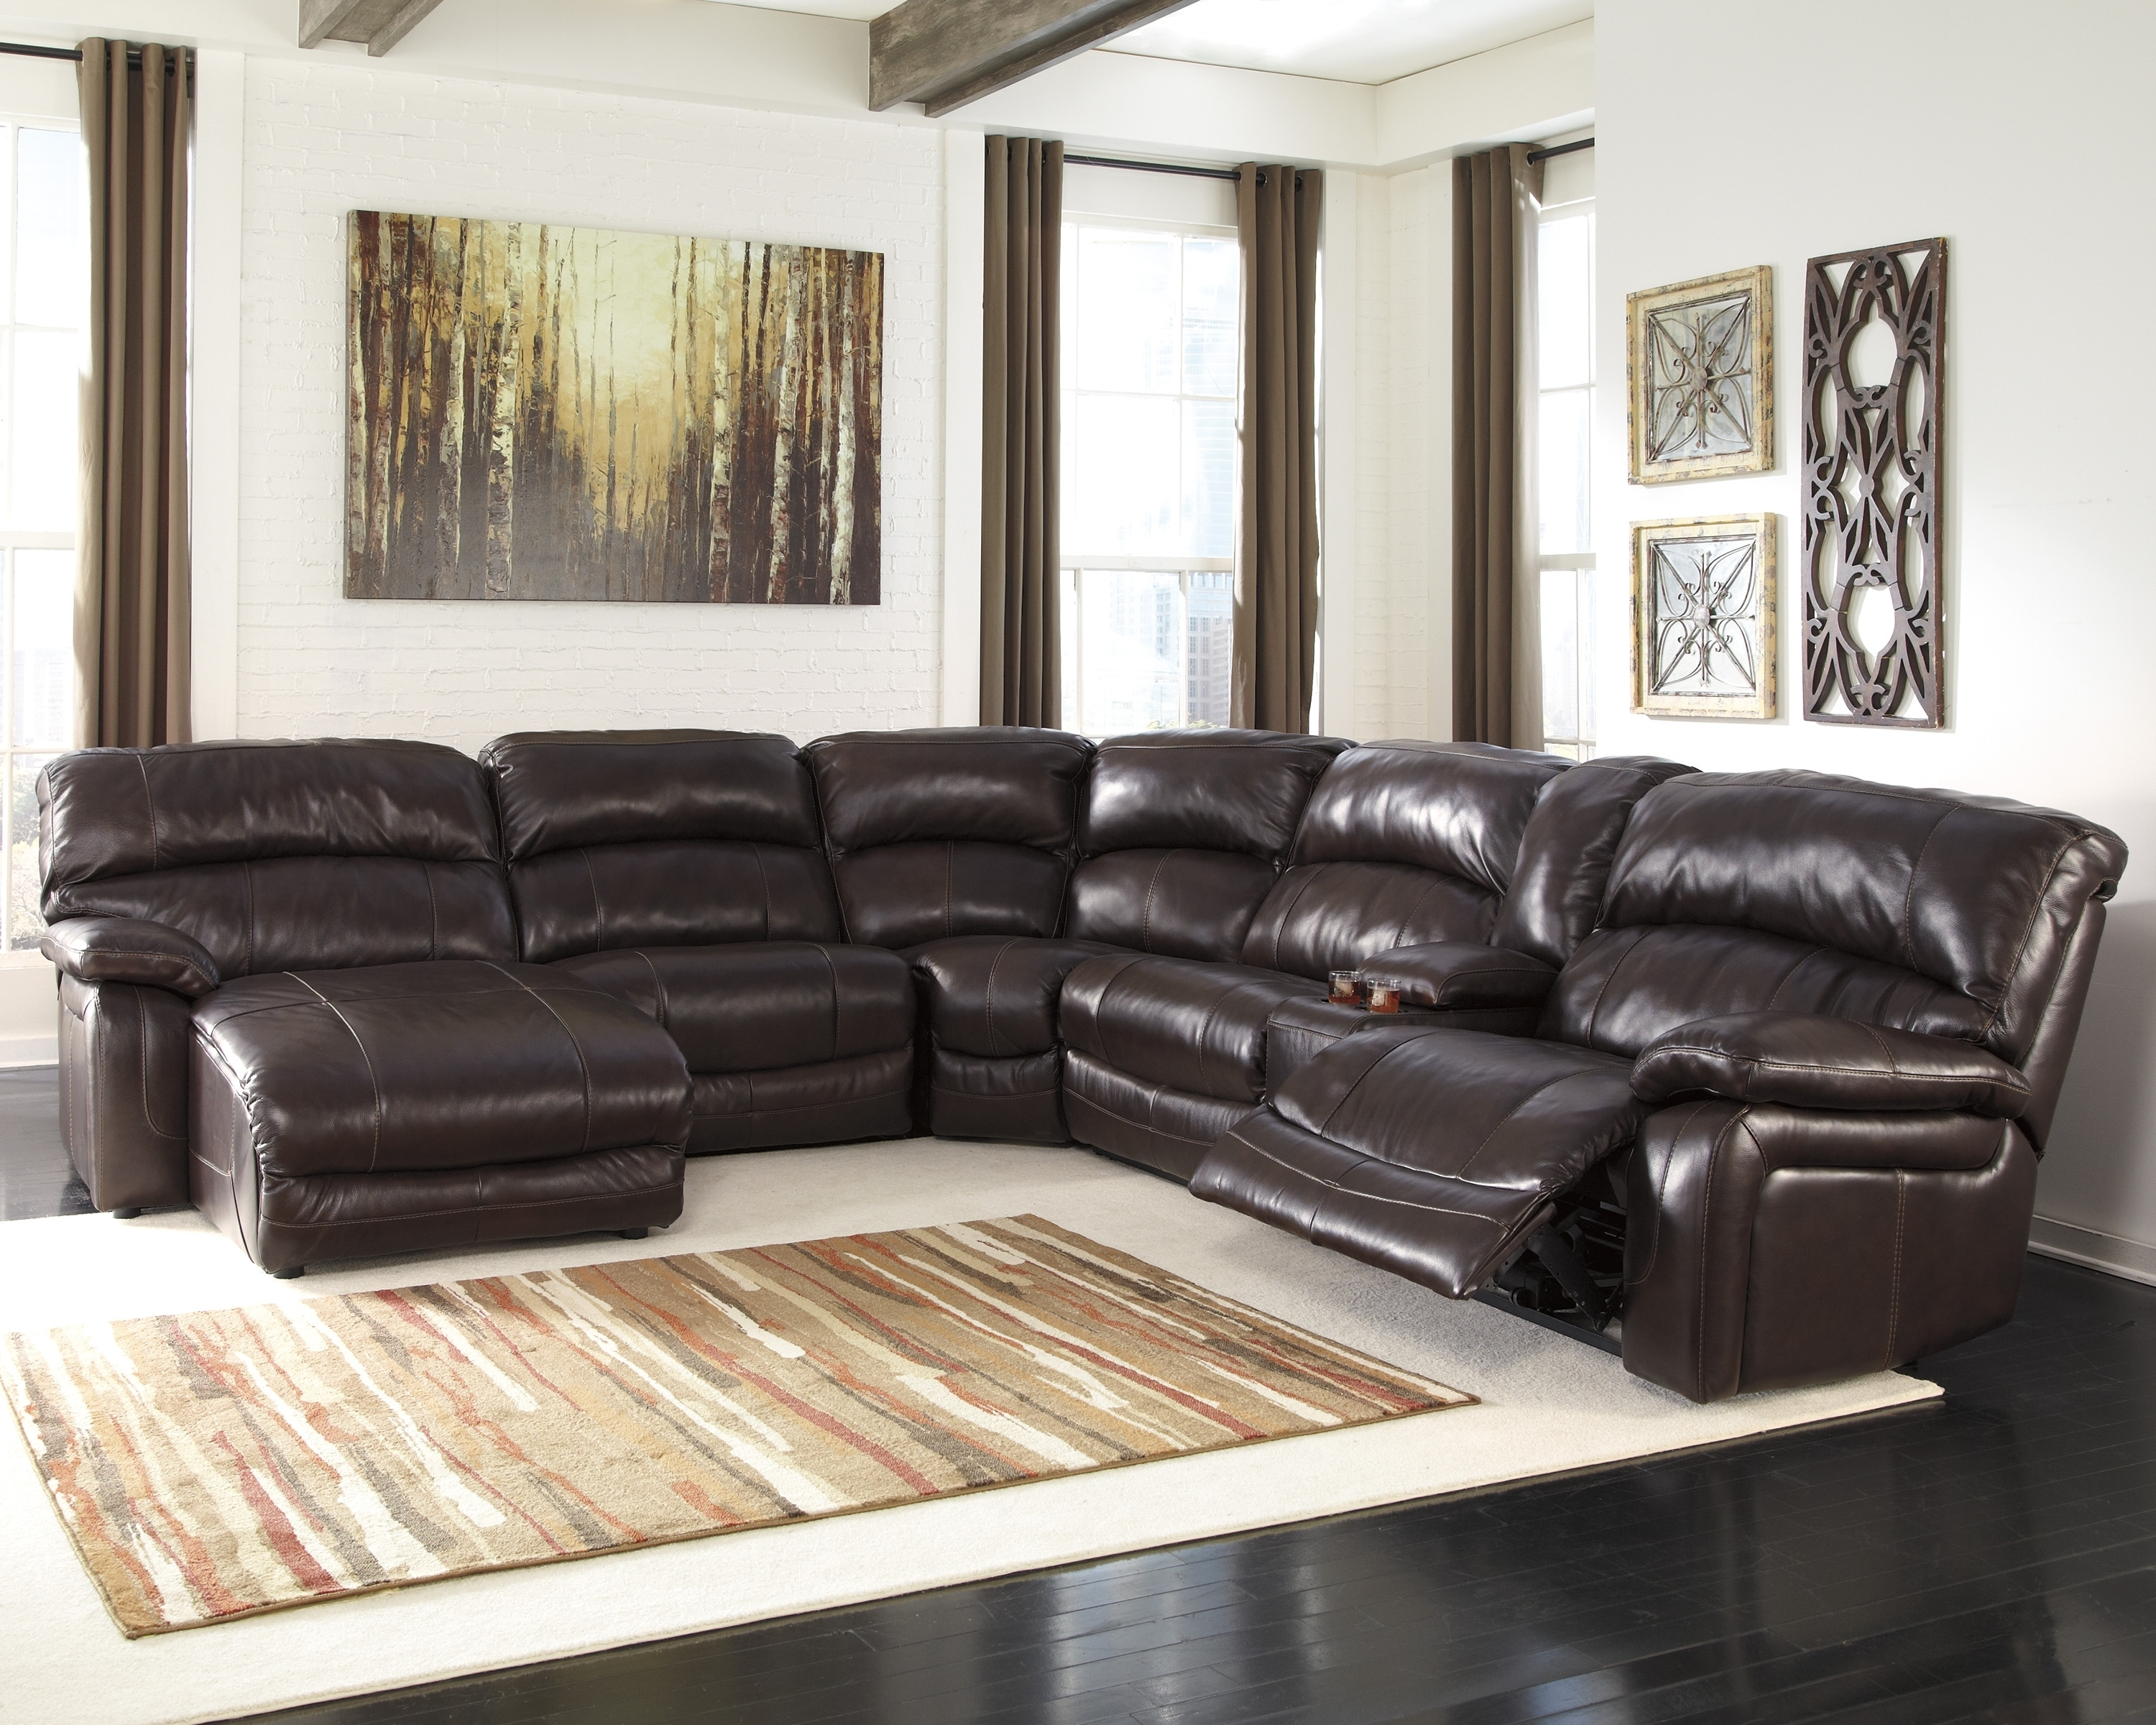 Fashionable Gallery Craftsman Sectional Sofa – Mediasupload Intended For Craftsman Sectional Sofas (View 5 of 15)